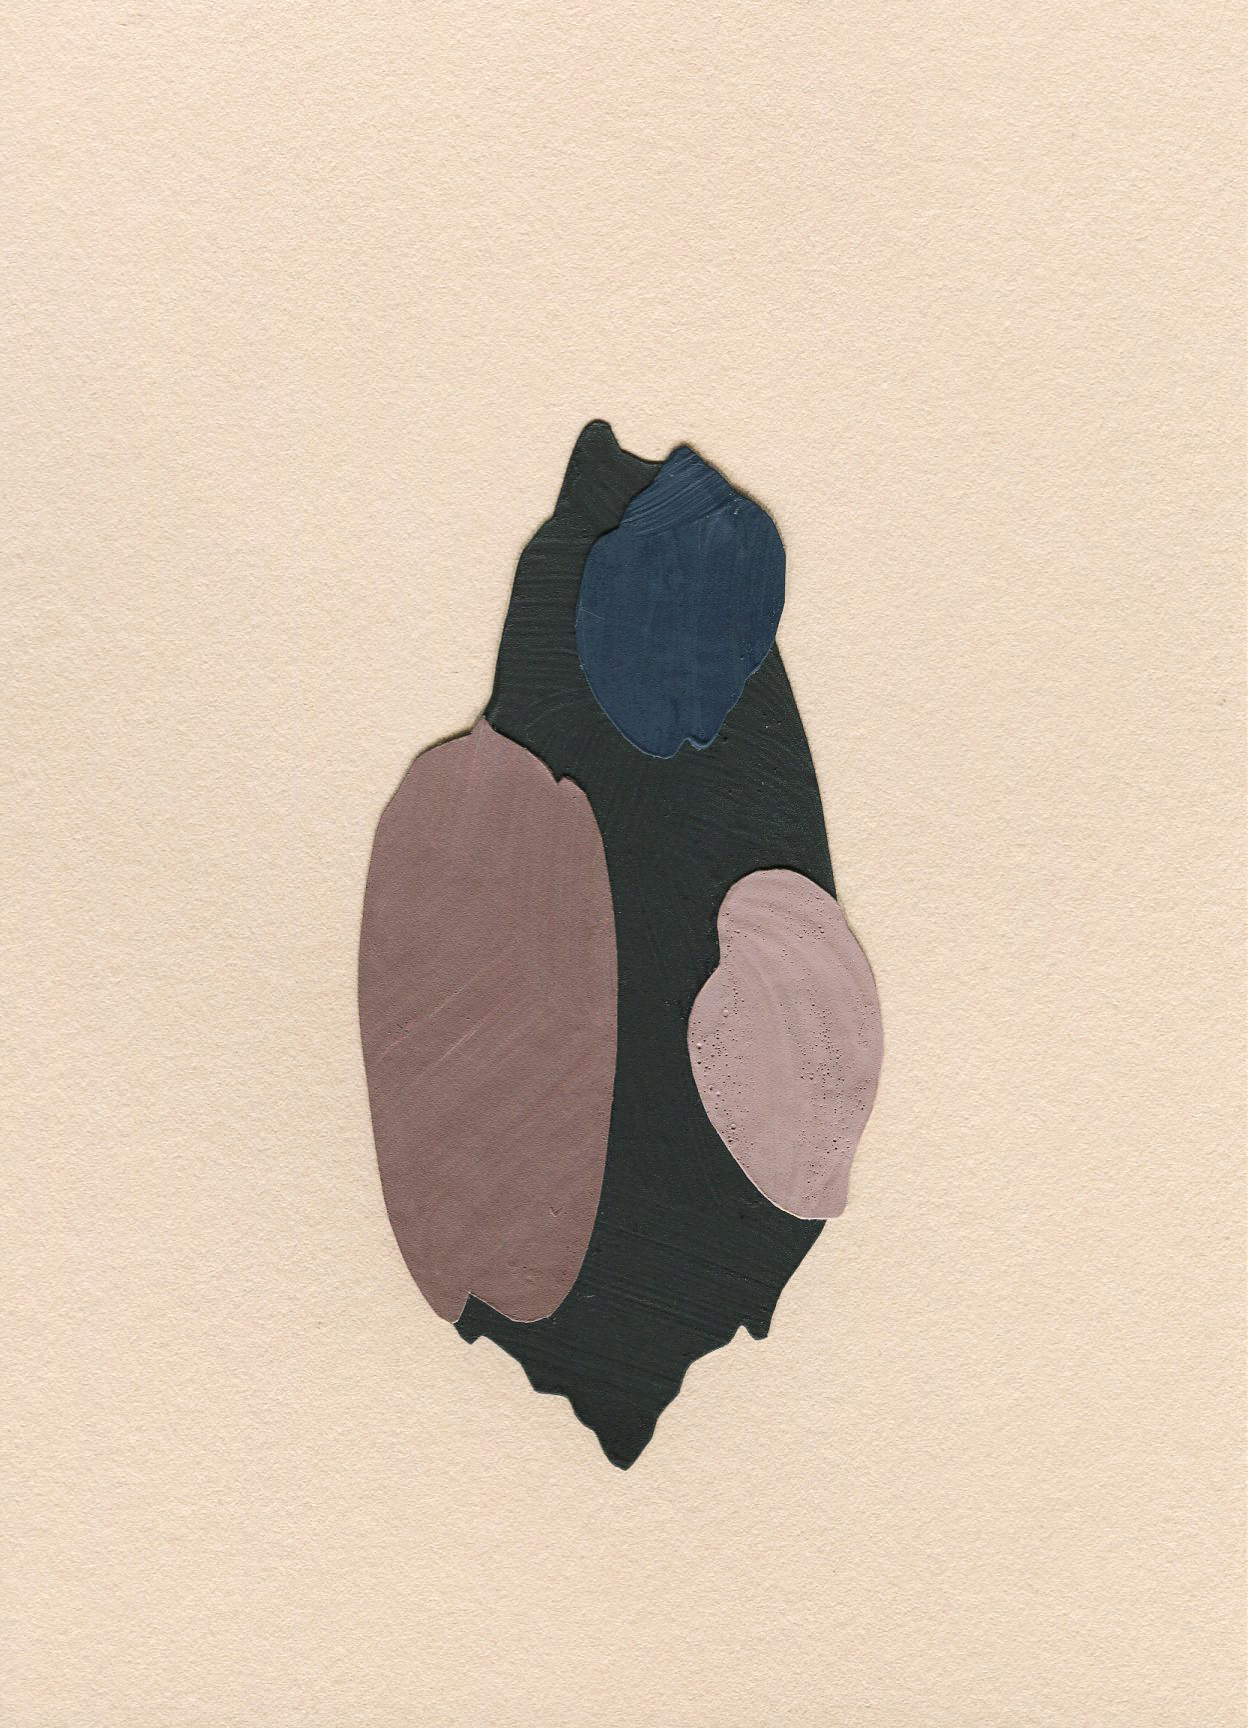 Shell Collection #6, collage, found paper, acrylic paint on Stonehenge paper, 105mm x 148mm